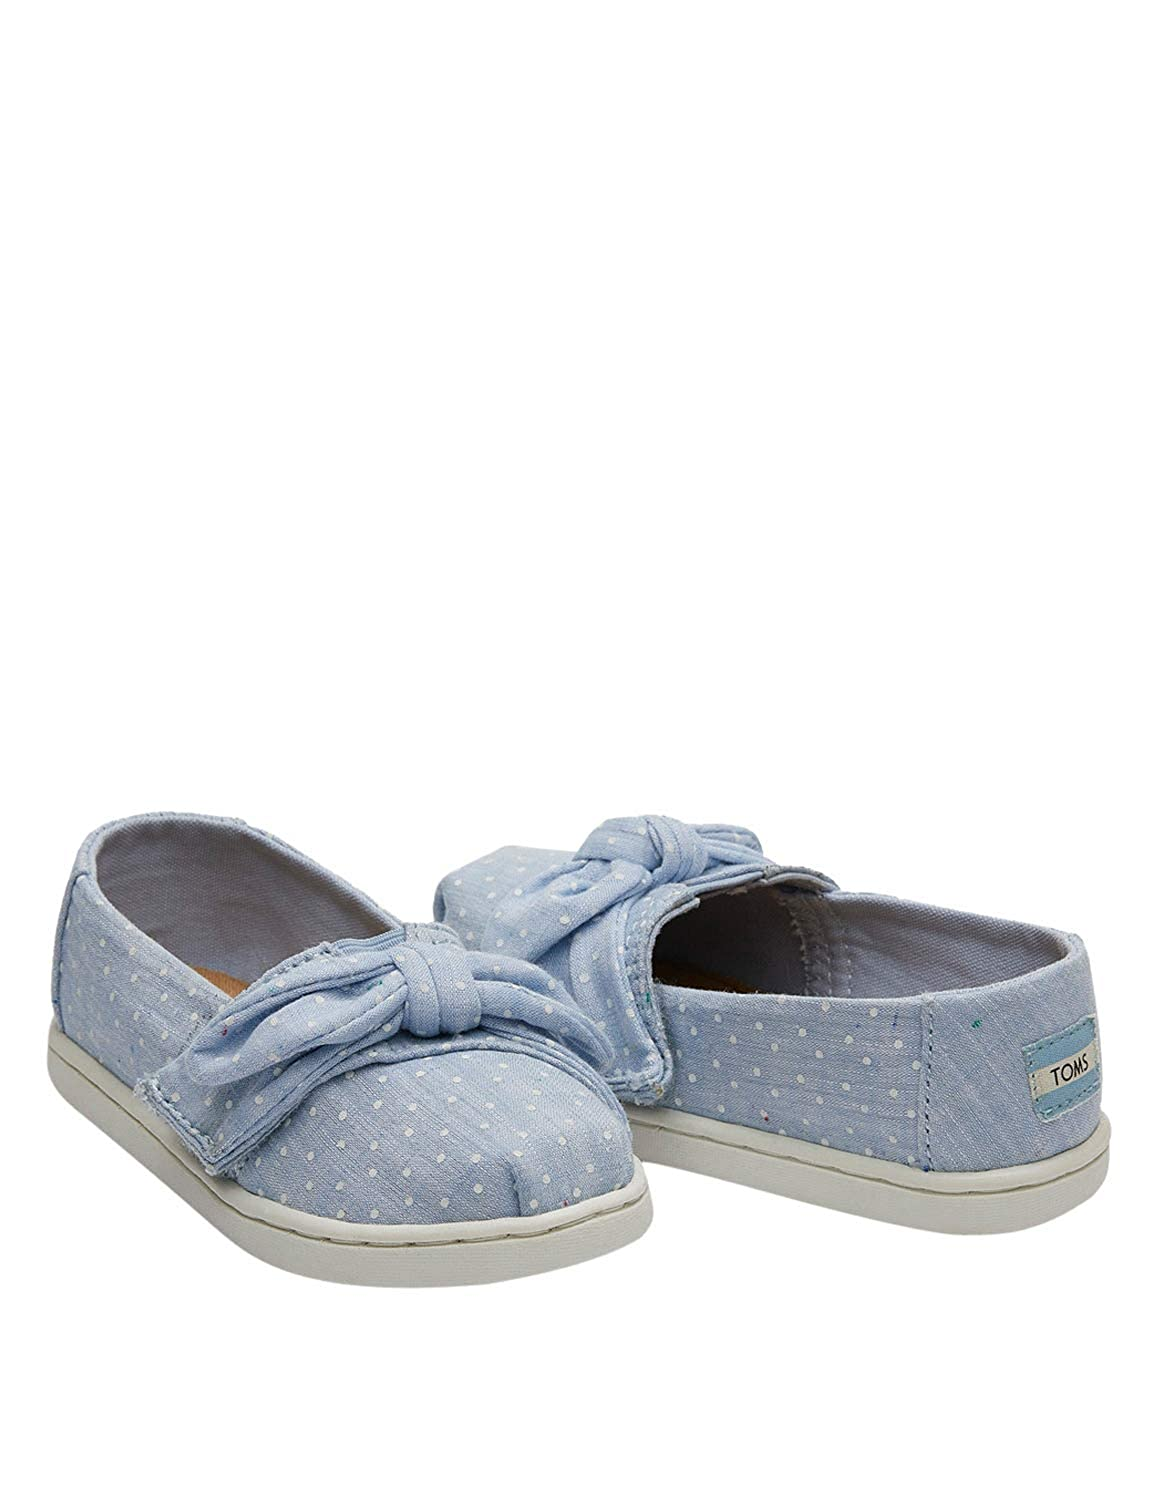 01ce1d9319144 TOMS Kids Baby Girl's Alpargata (Toddler/Little Kid) Light Bliss Blue  Speckled Chambray Dots/Bow 5 M US Toddler